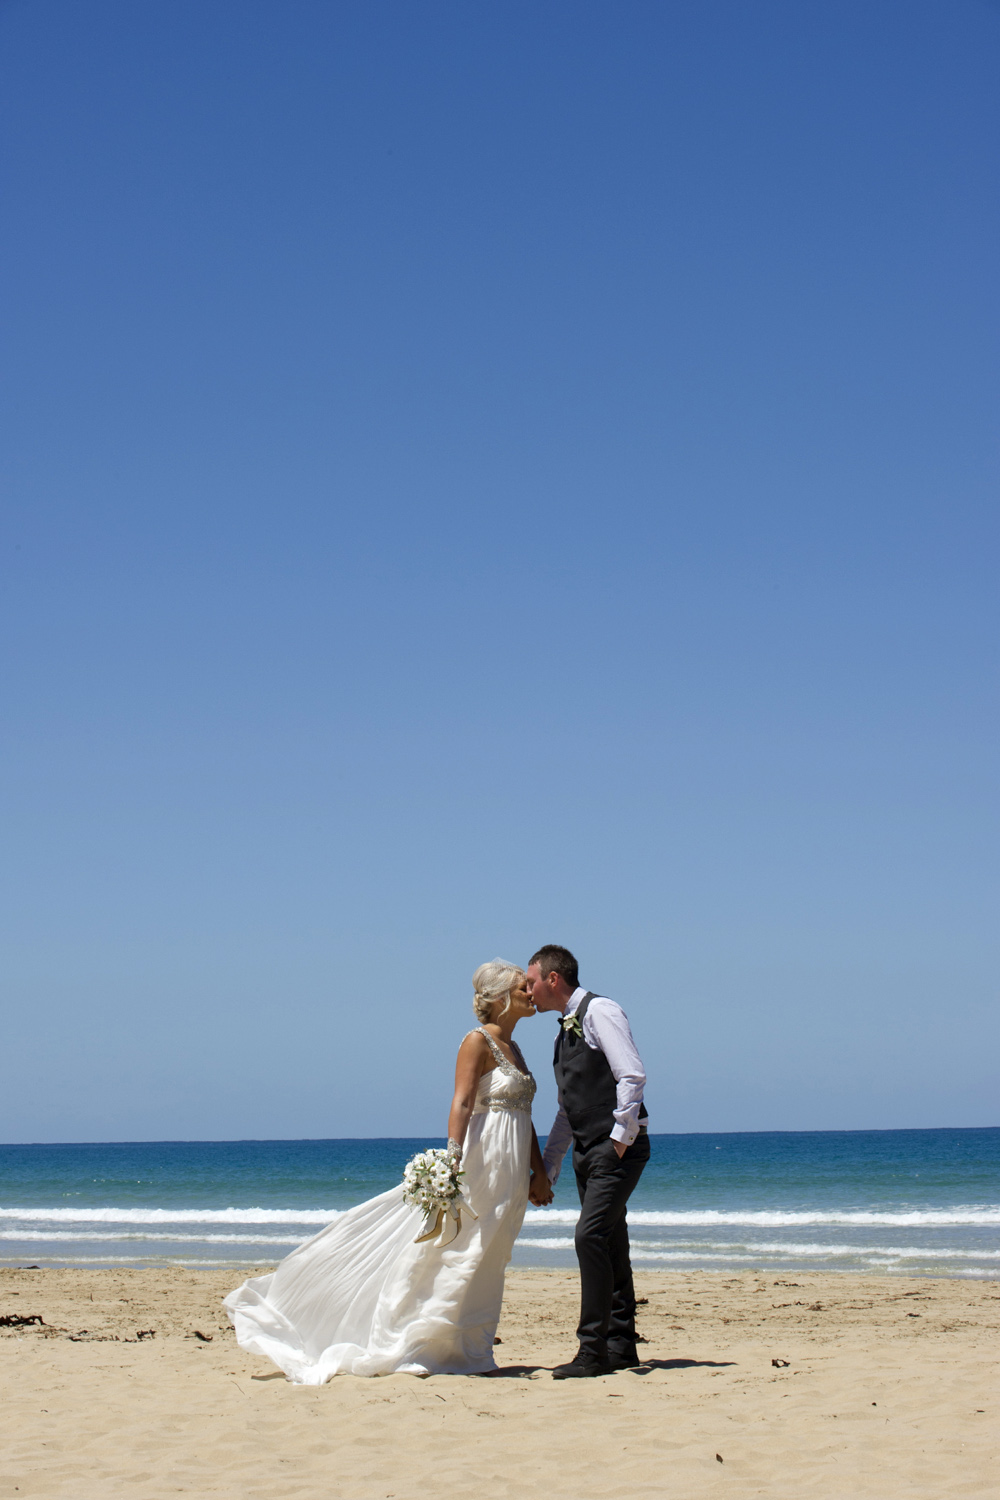 Lorne wedding photographer